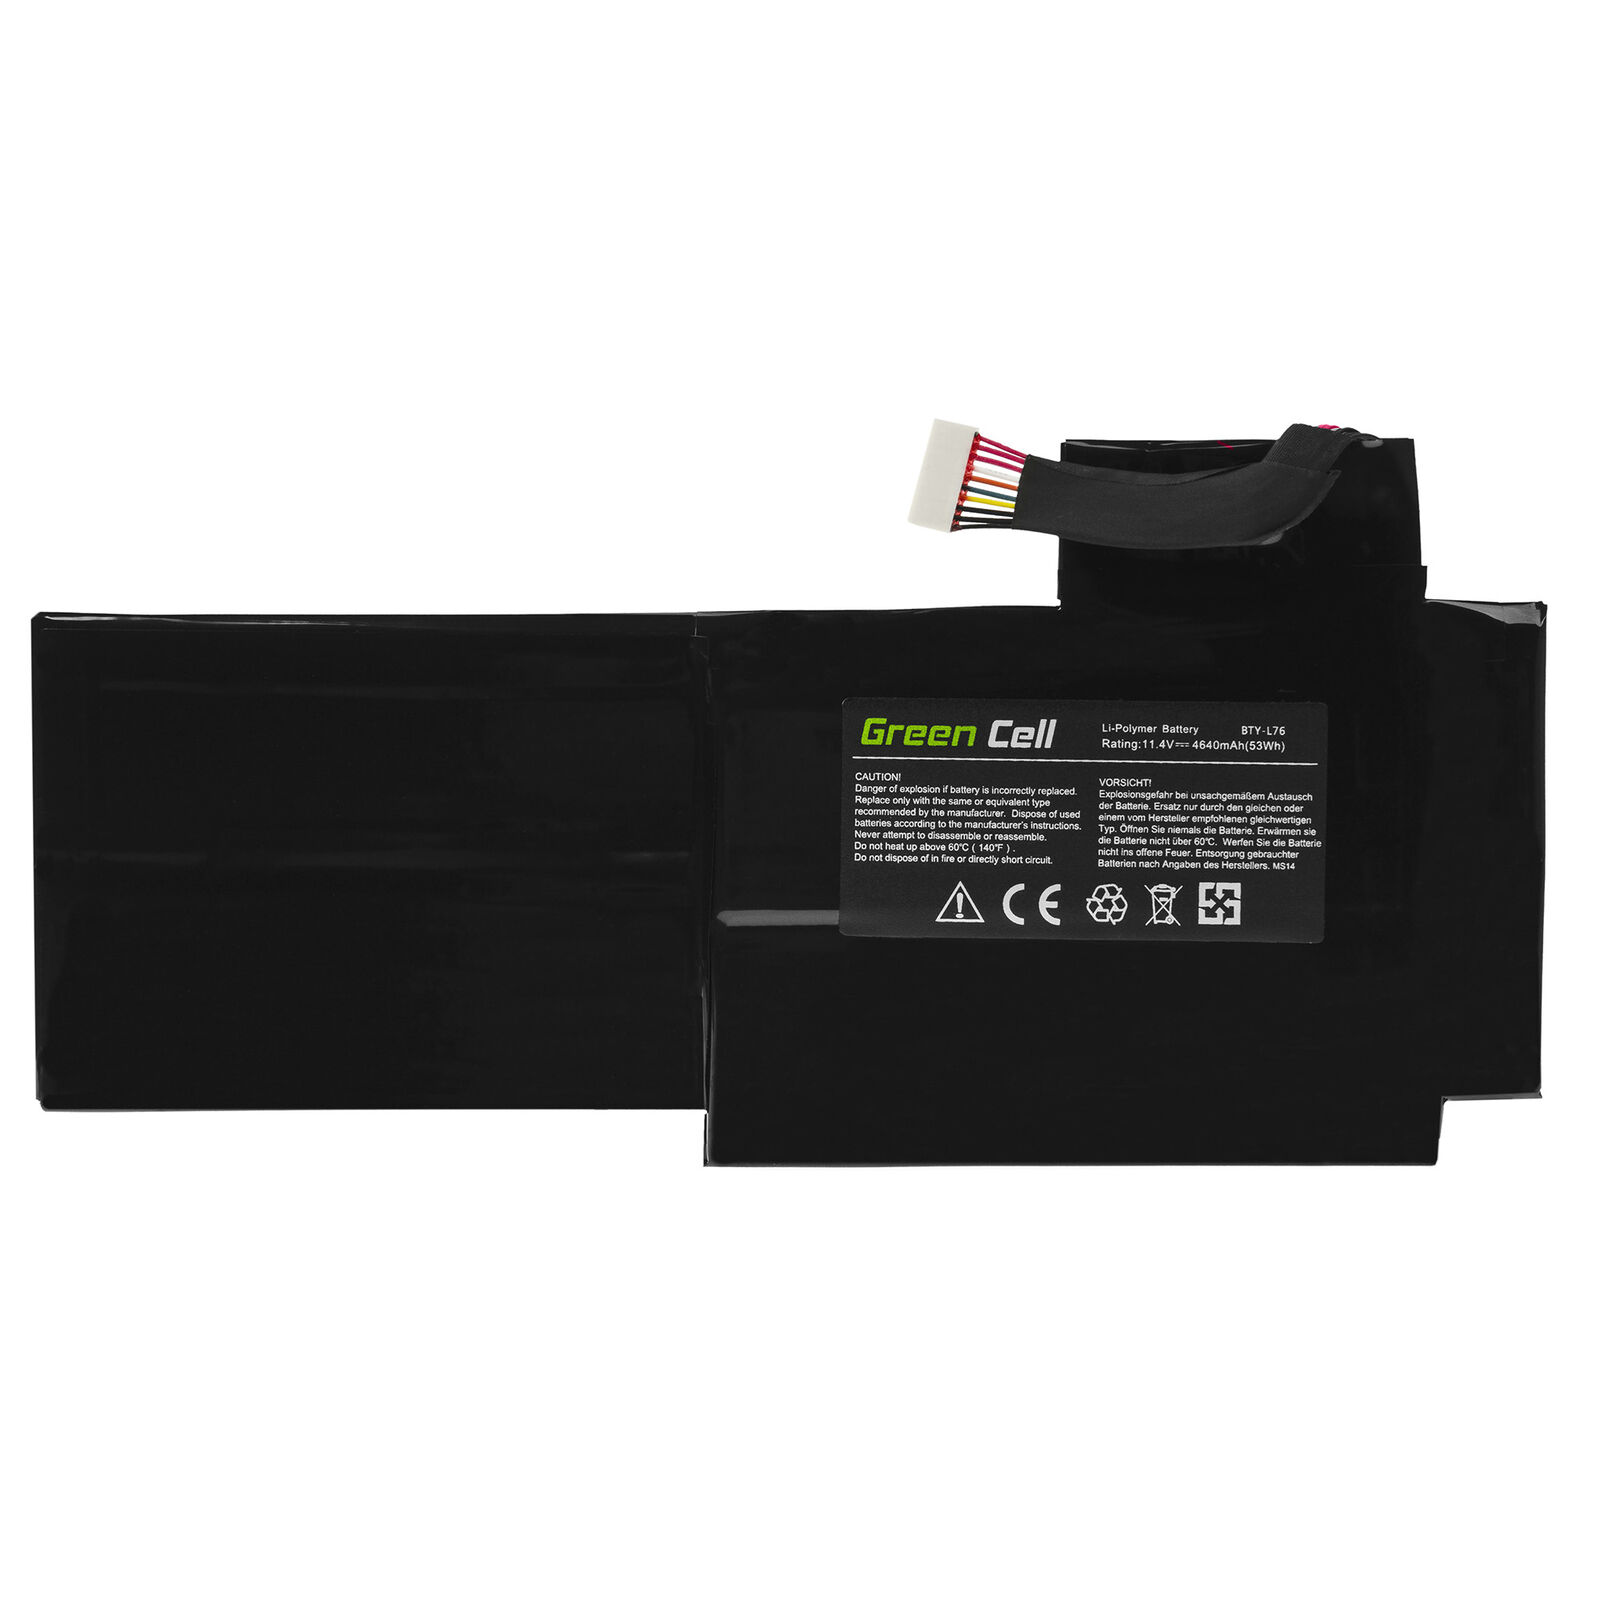 Medion S4217T MD 98599 MD 98711 X7611 X7615 X7613 BTY-L76 batteria compatibile